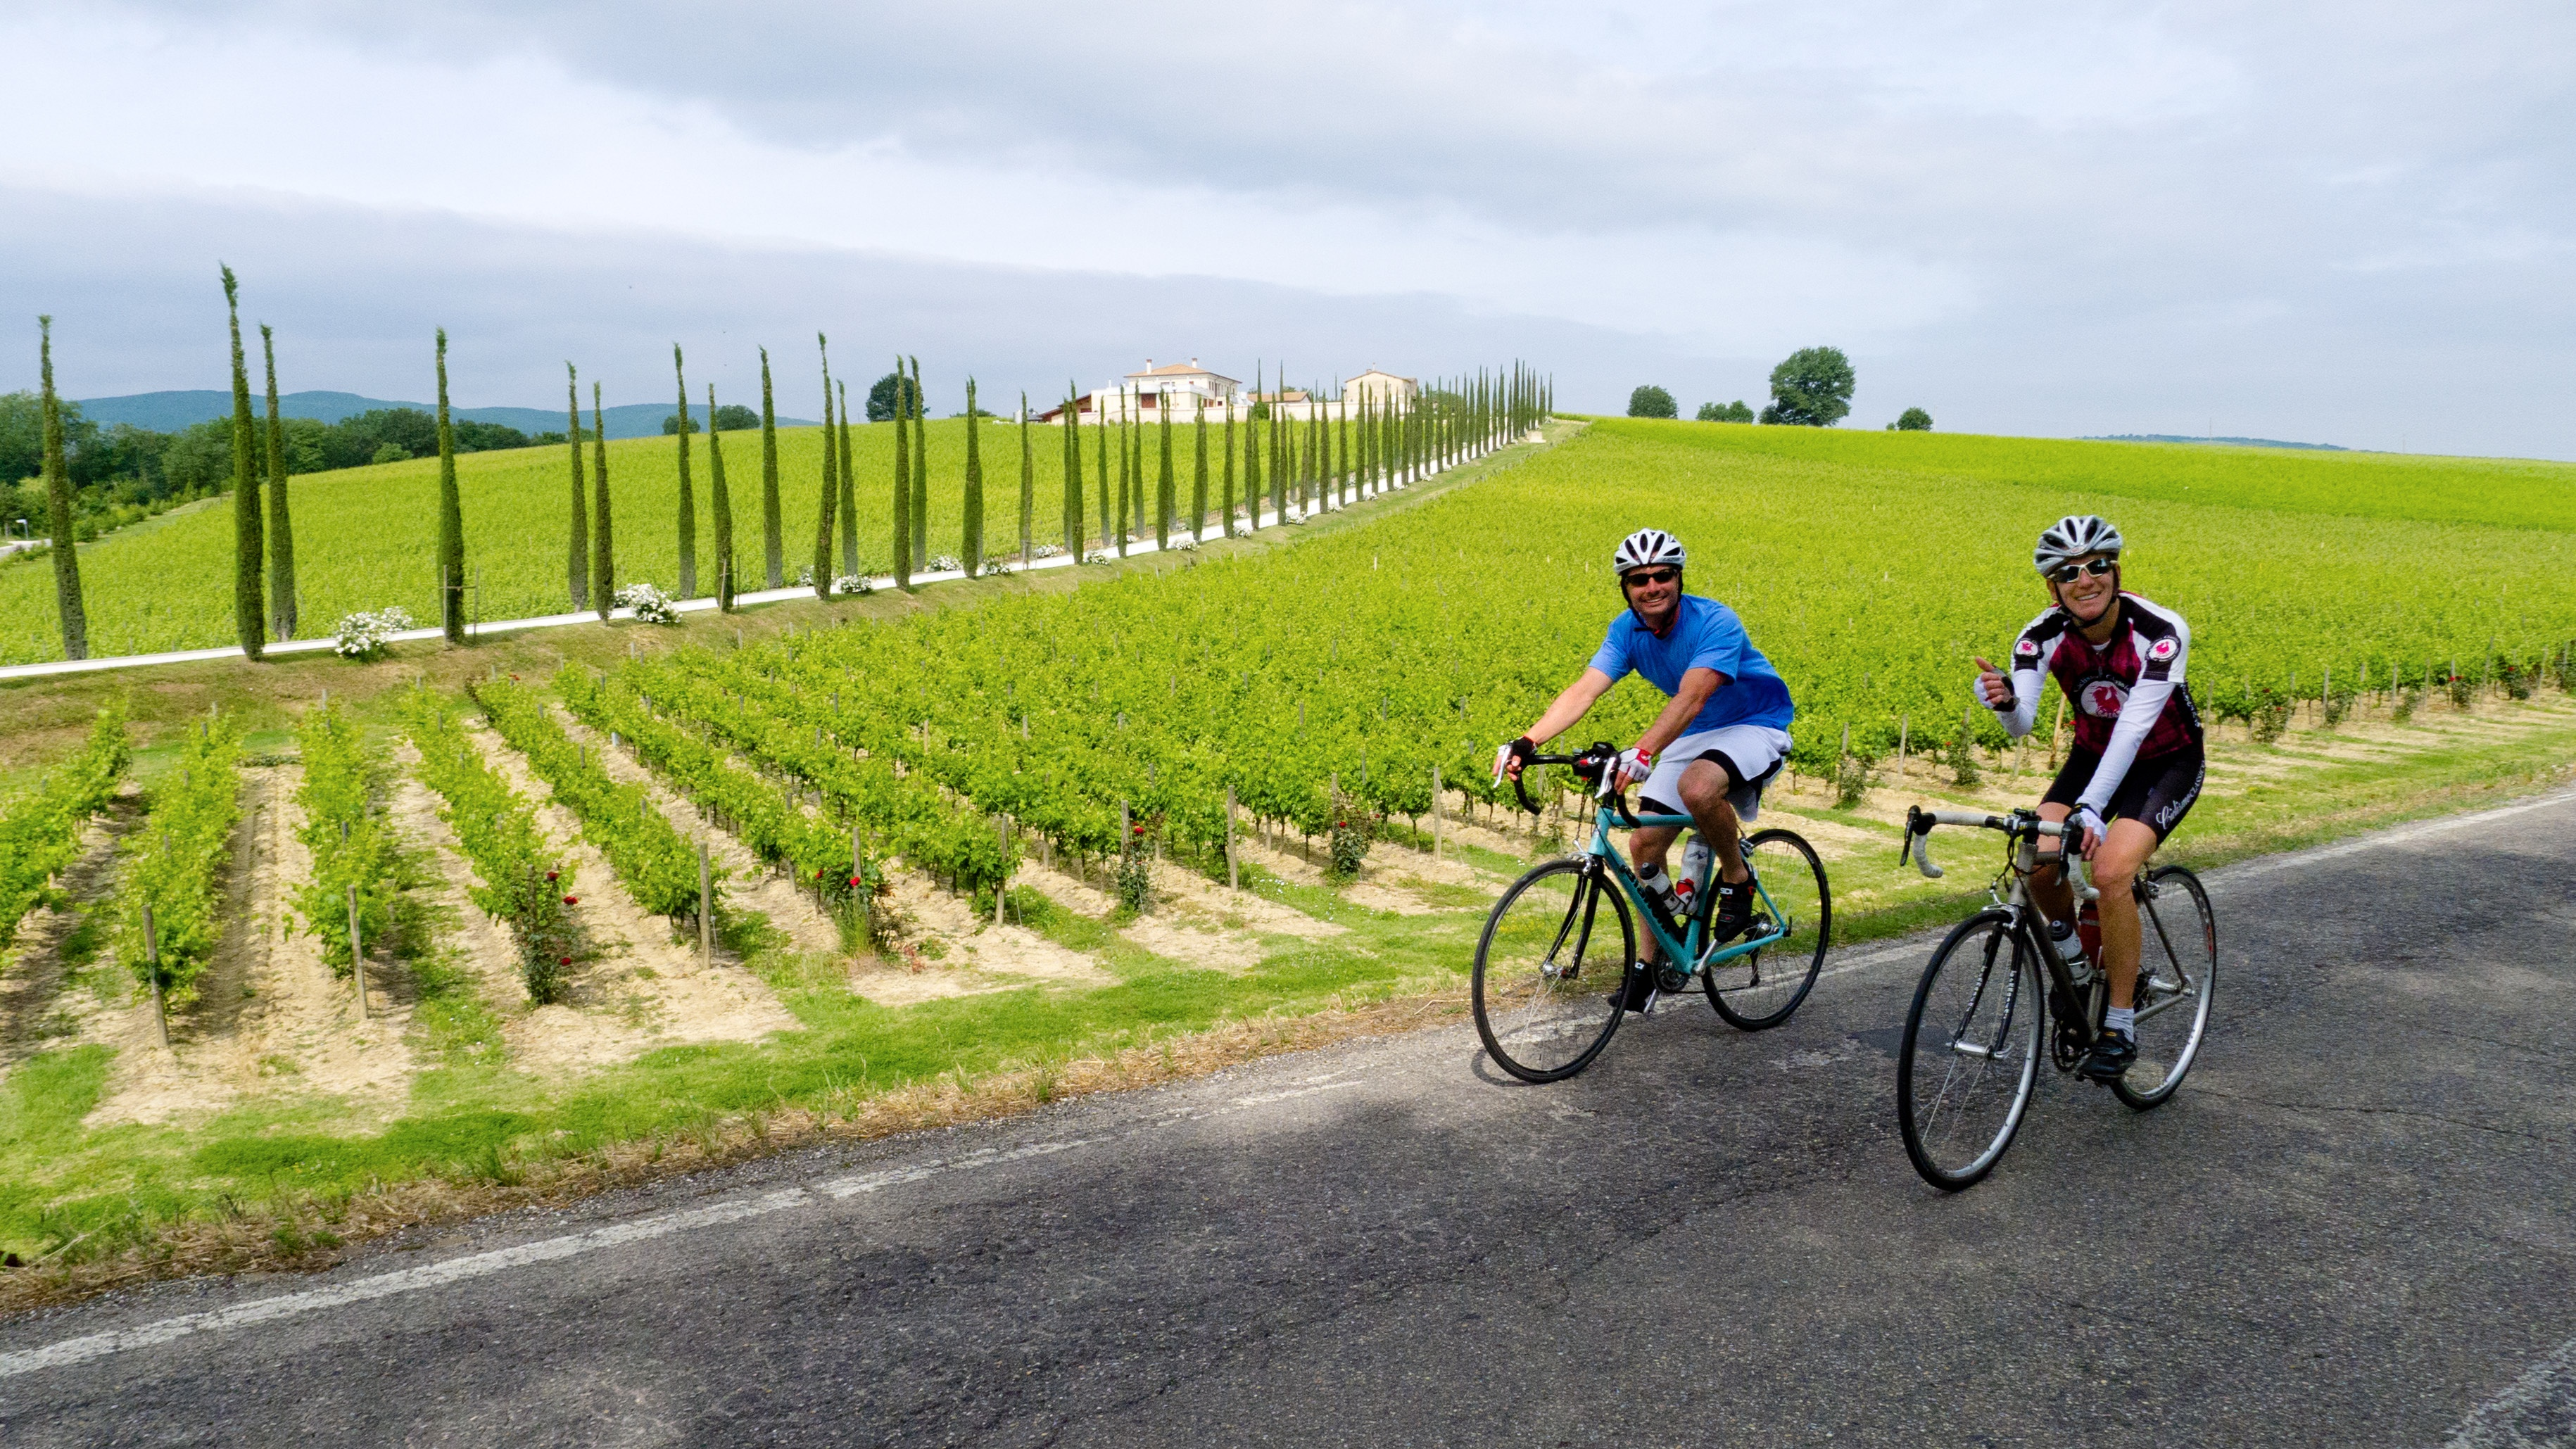 A photograph of two cyclists riding through rolling hills in Italy.